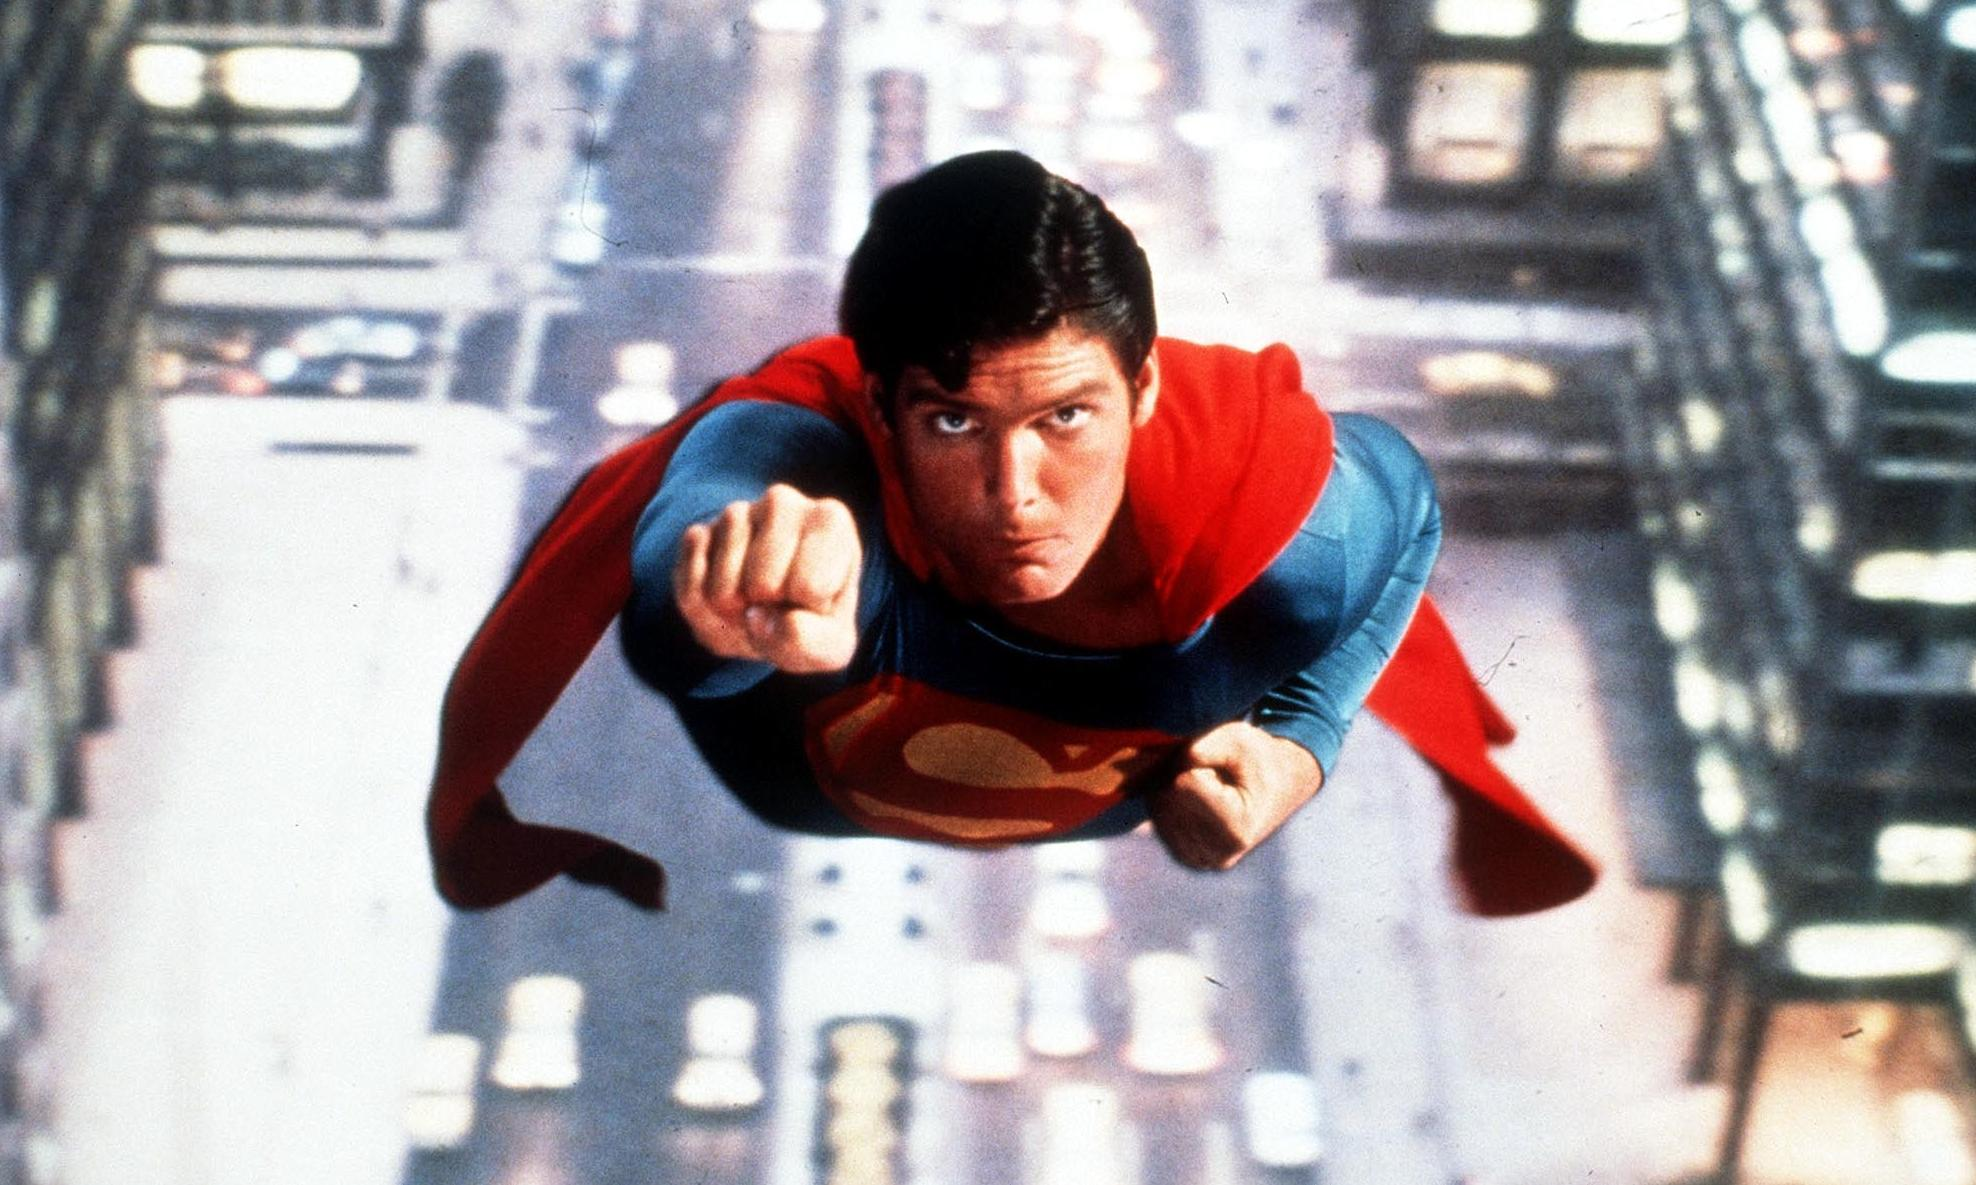 Forty years on from Superman: The Movie, I still believe a man can fly